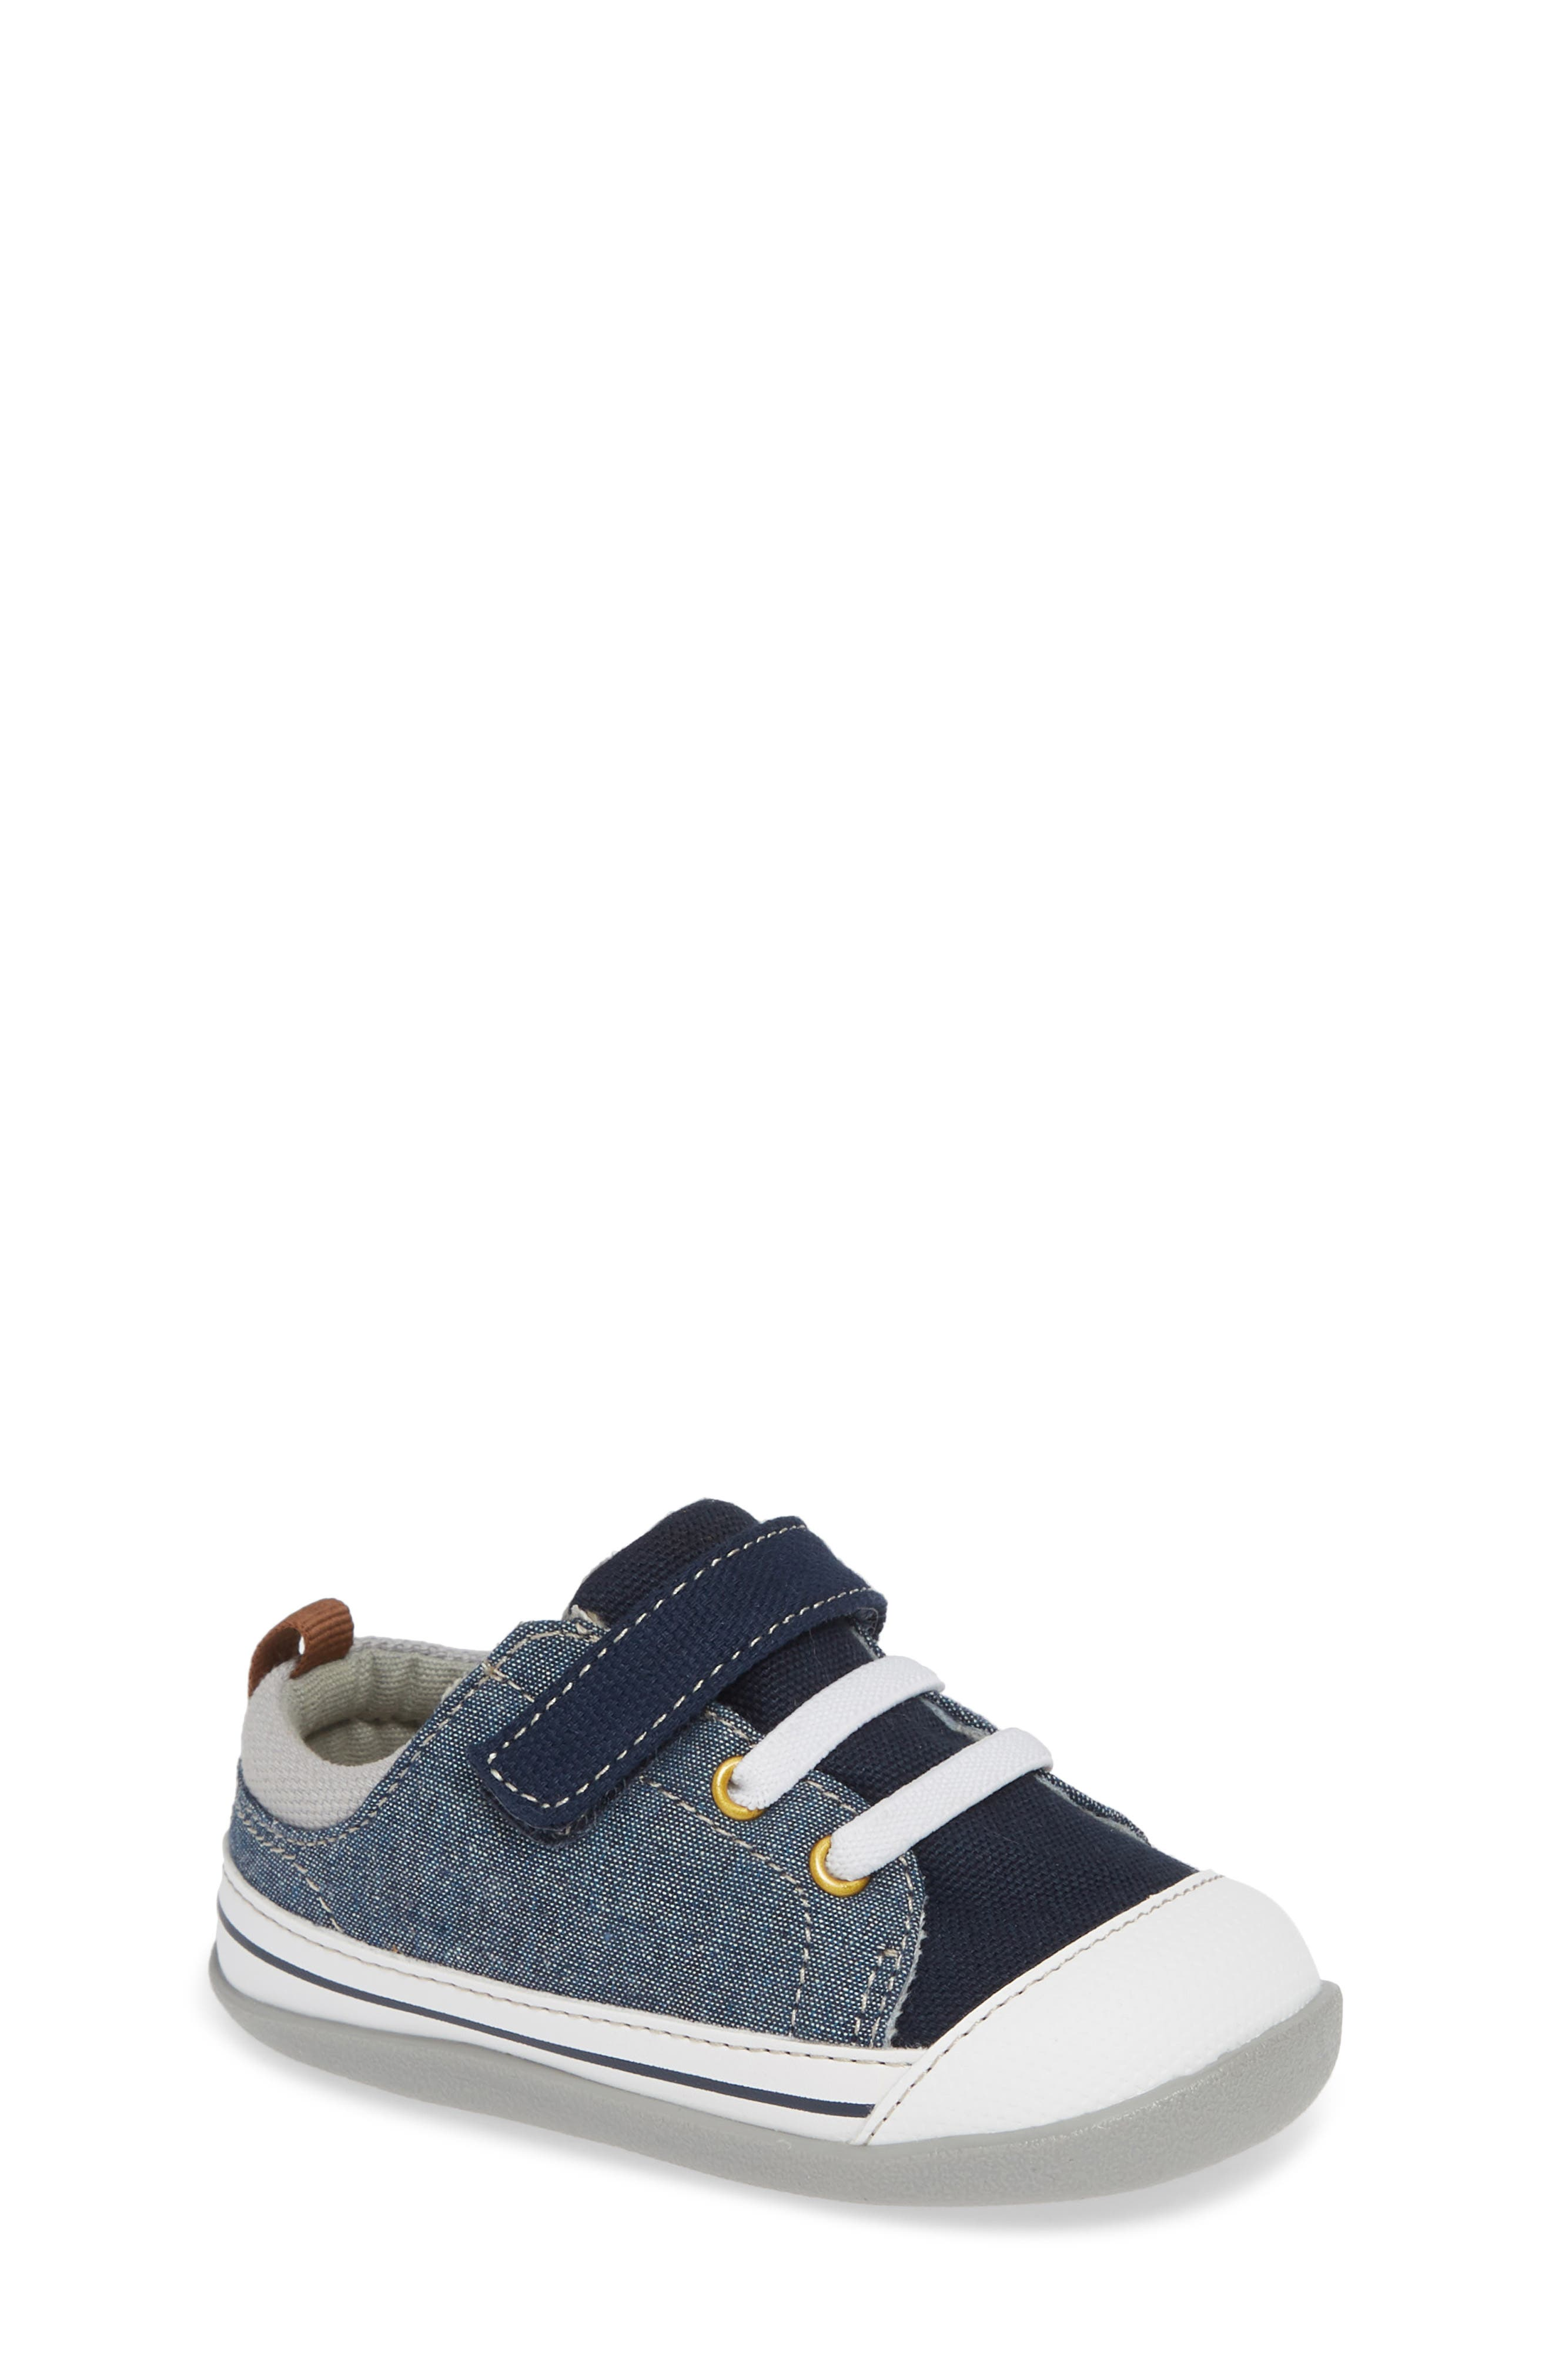 Stevie II Sneaker,                             Main thumbnail 1, color,                             BLUE DENIM